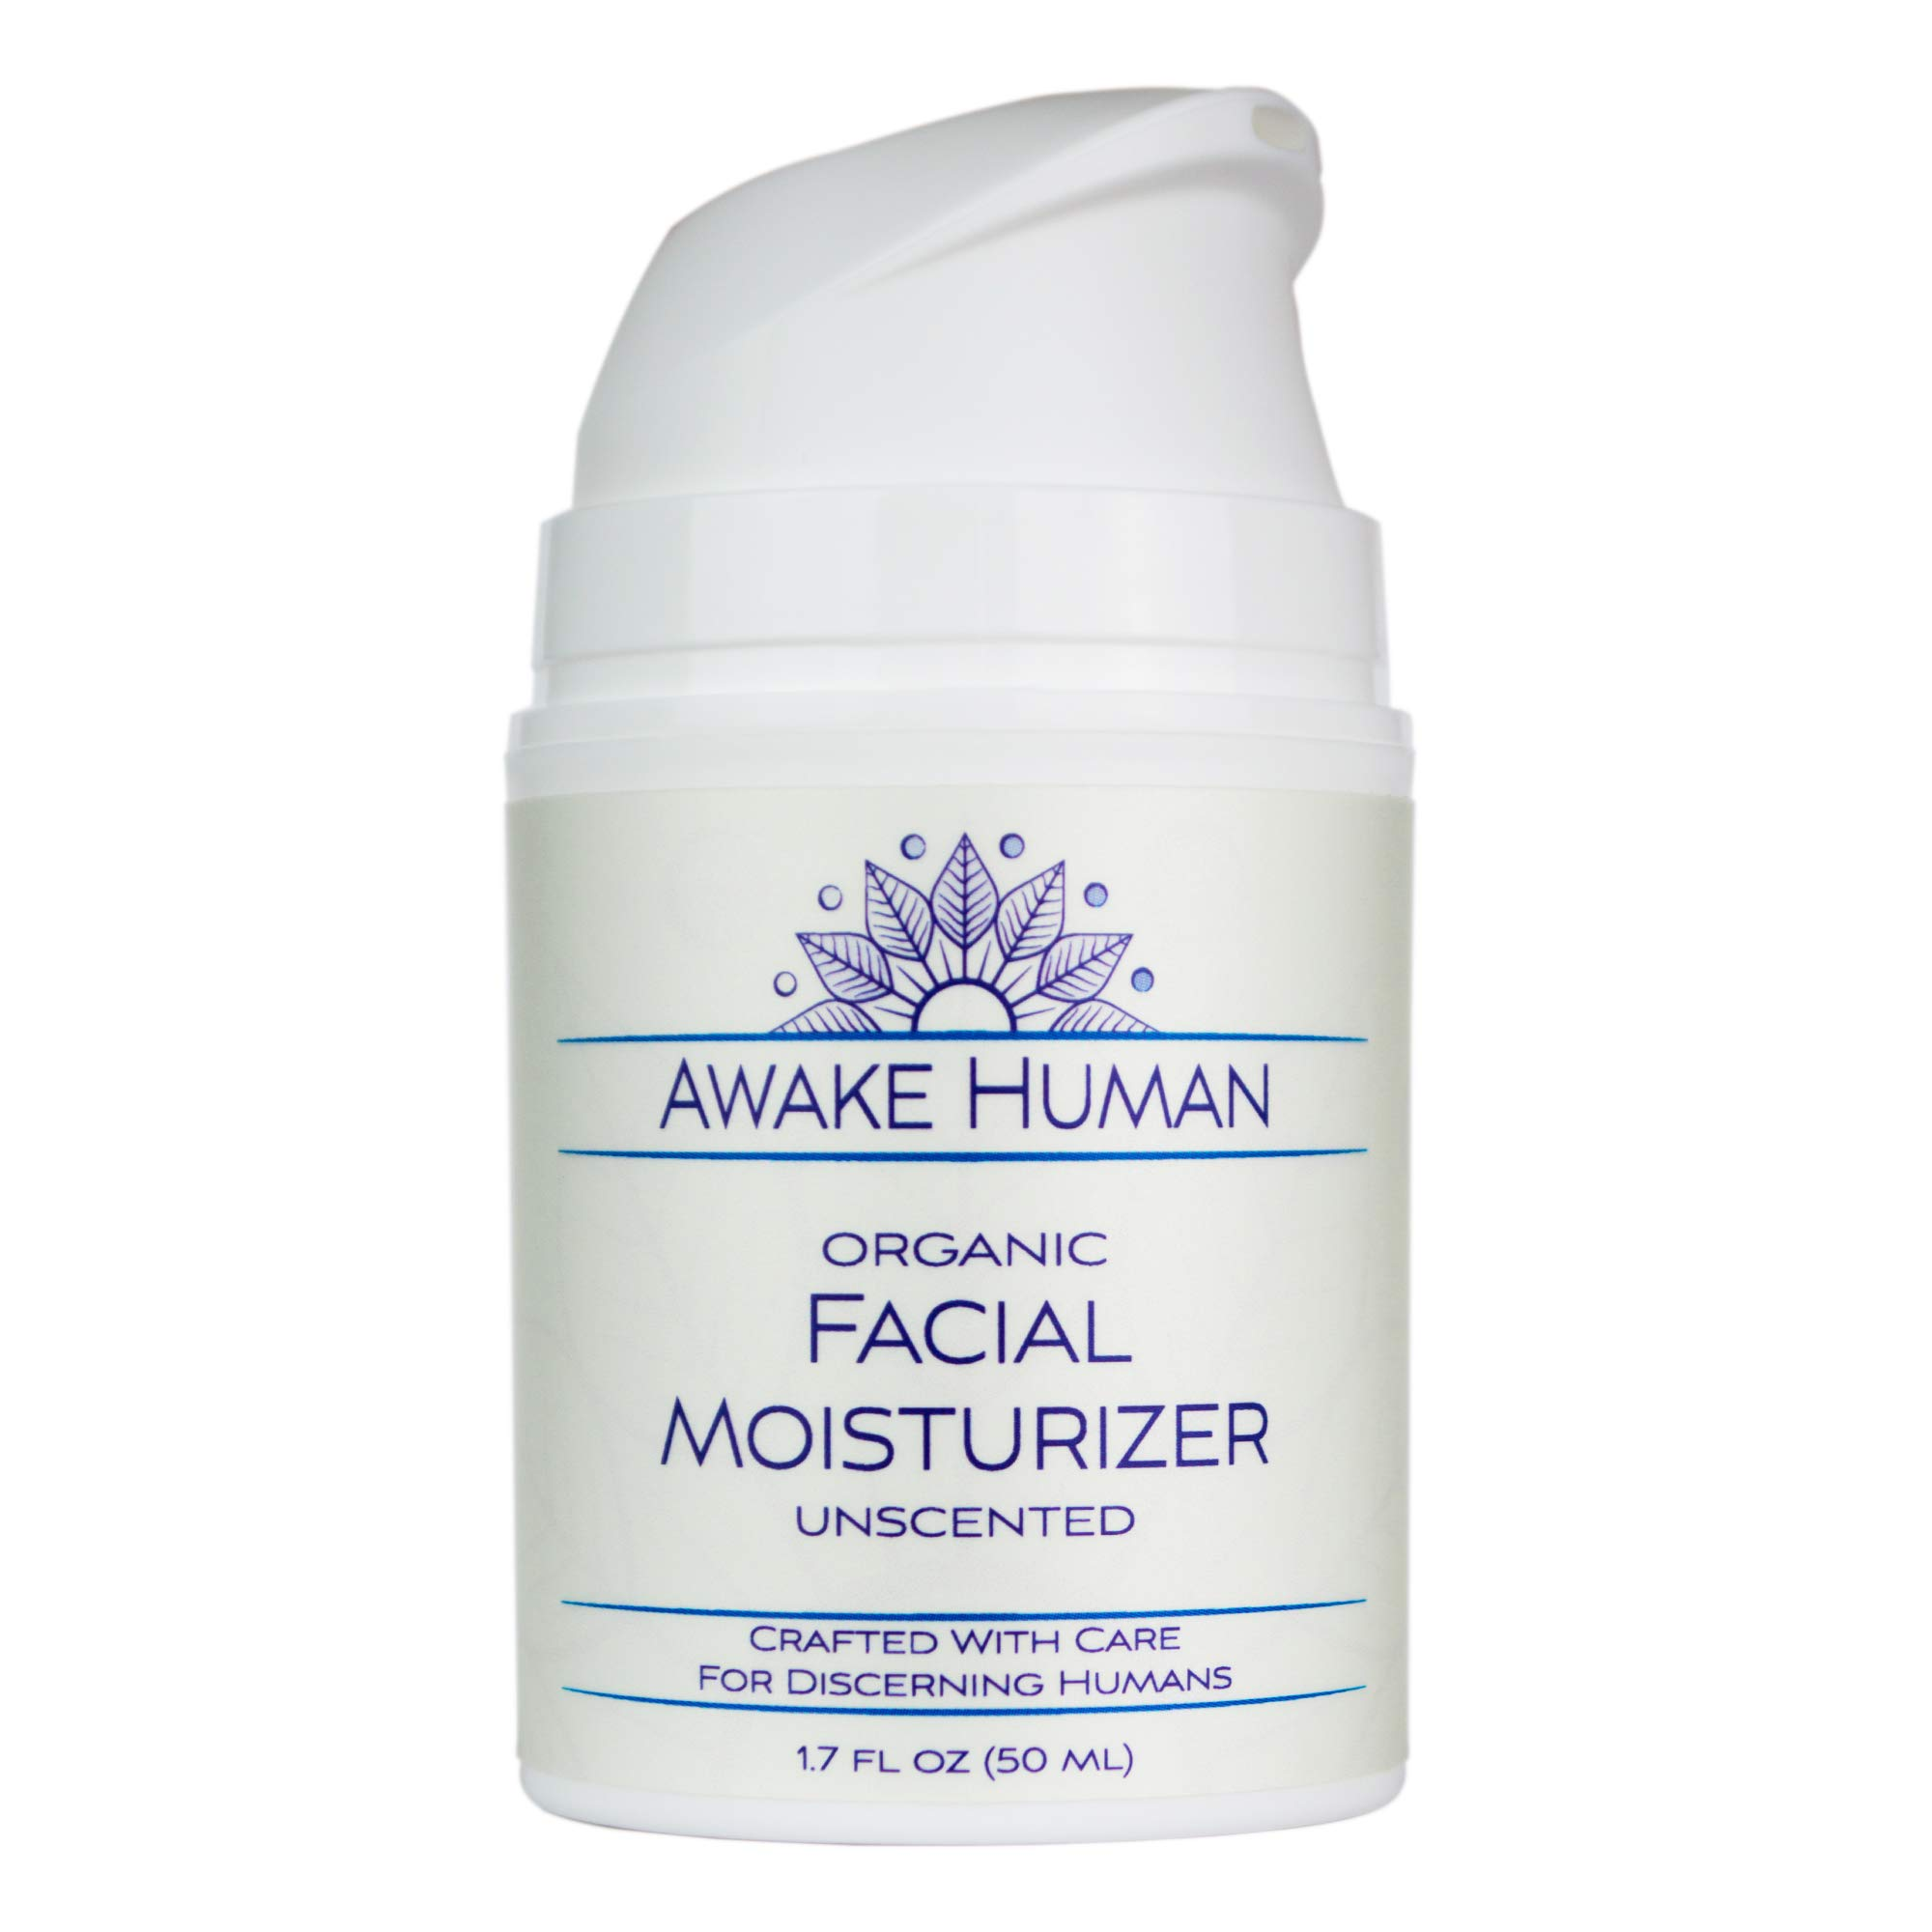 Organic Face Moisturizer, Unscented Natural Face Cream for Every Skin Type, Mostly Aloe, Jojoba, Green Tea, Shea Butter, Sweet Almond, 1.7 Ounces by Awake Human